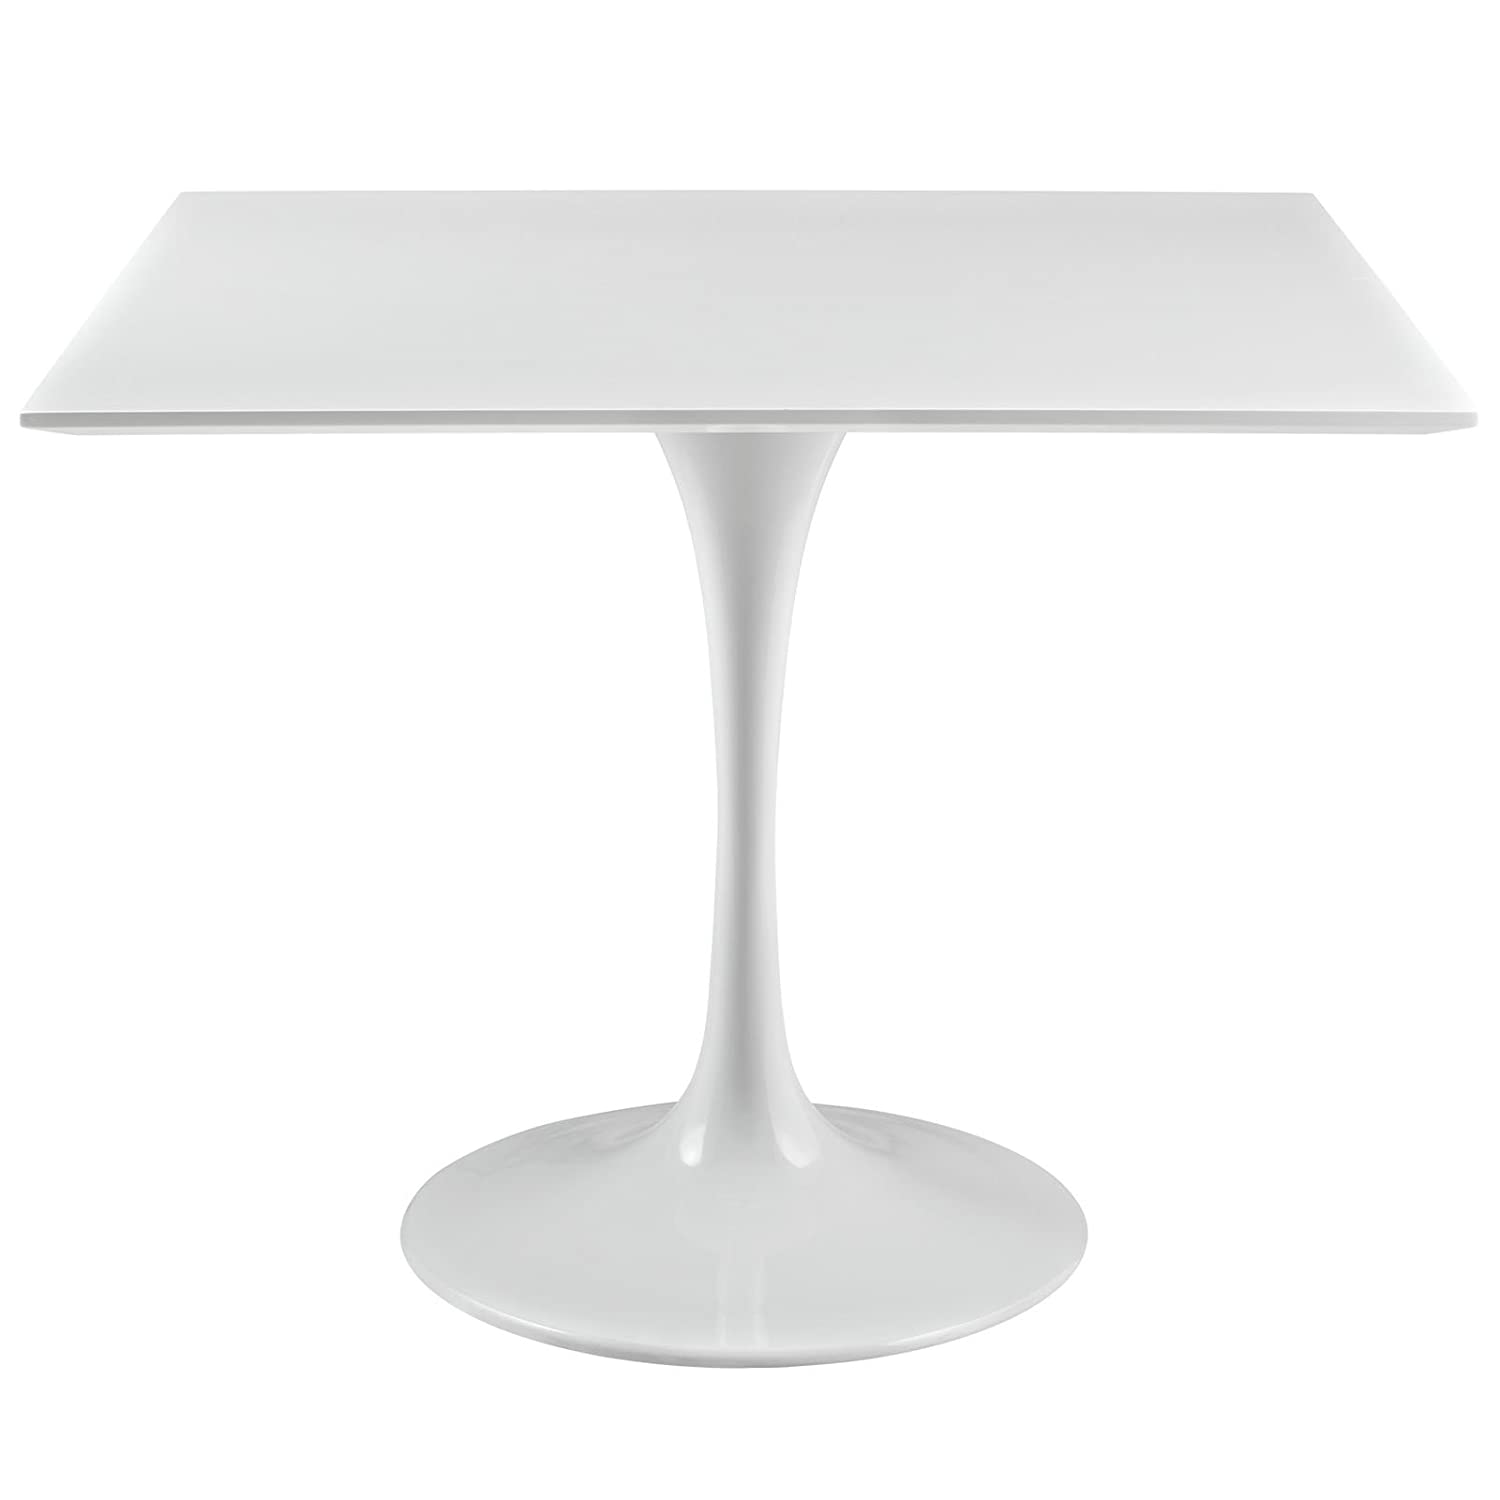 "Modway Lippa 36"" Mid-Century Modern Kitchen and Dining Table with Square Top and Pedestal Base in White"